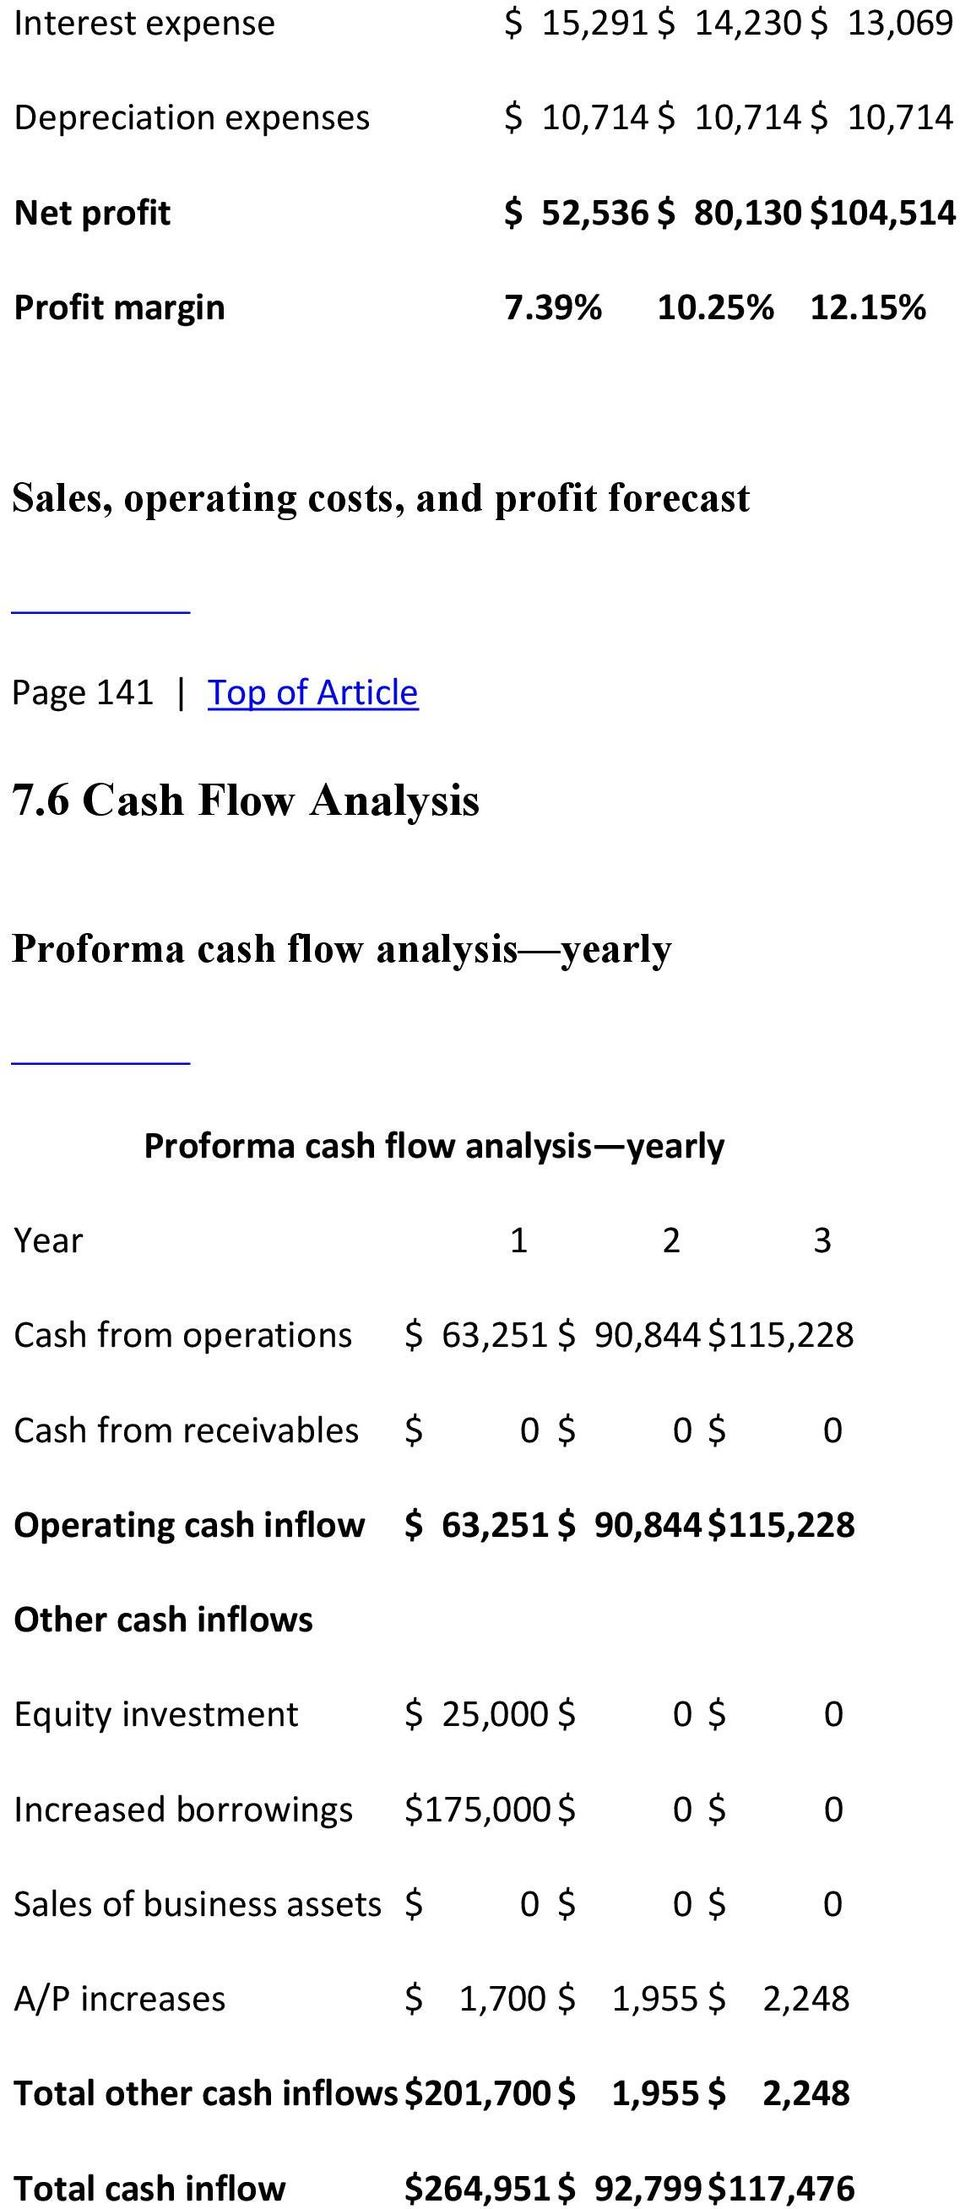 6 Cash Flow Analysis Proforma cash flow analysis yearly Proforma cash flow analysis yearly Year 1 2 3 Cash from operations $ 63,251 $ 90,844 $115,228 Cash from receivables $ 0 $ 0 $